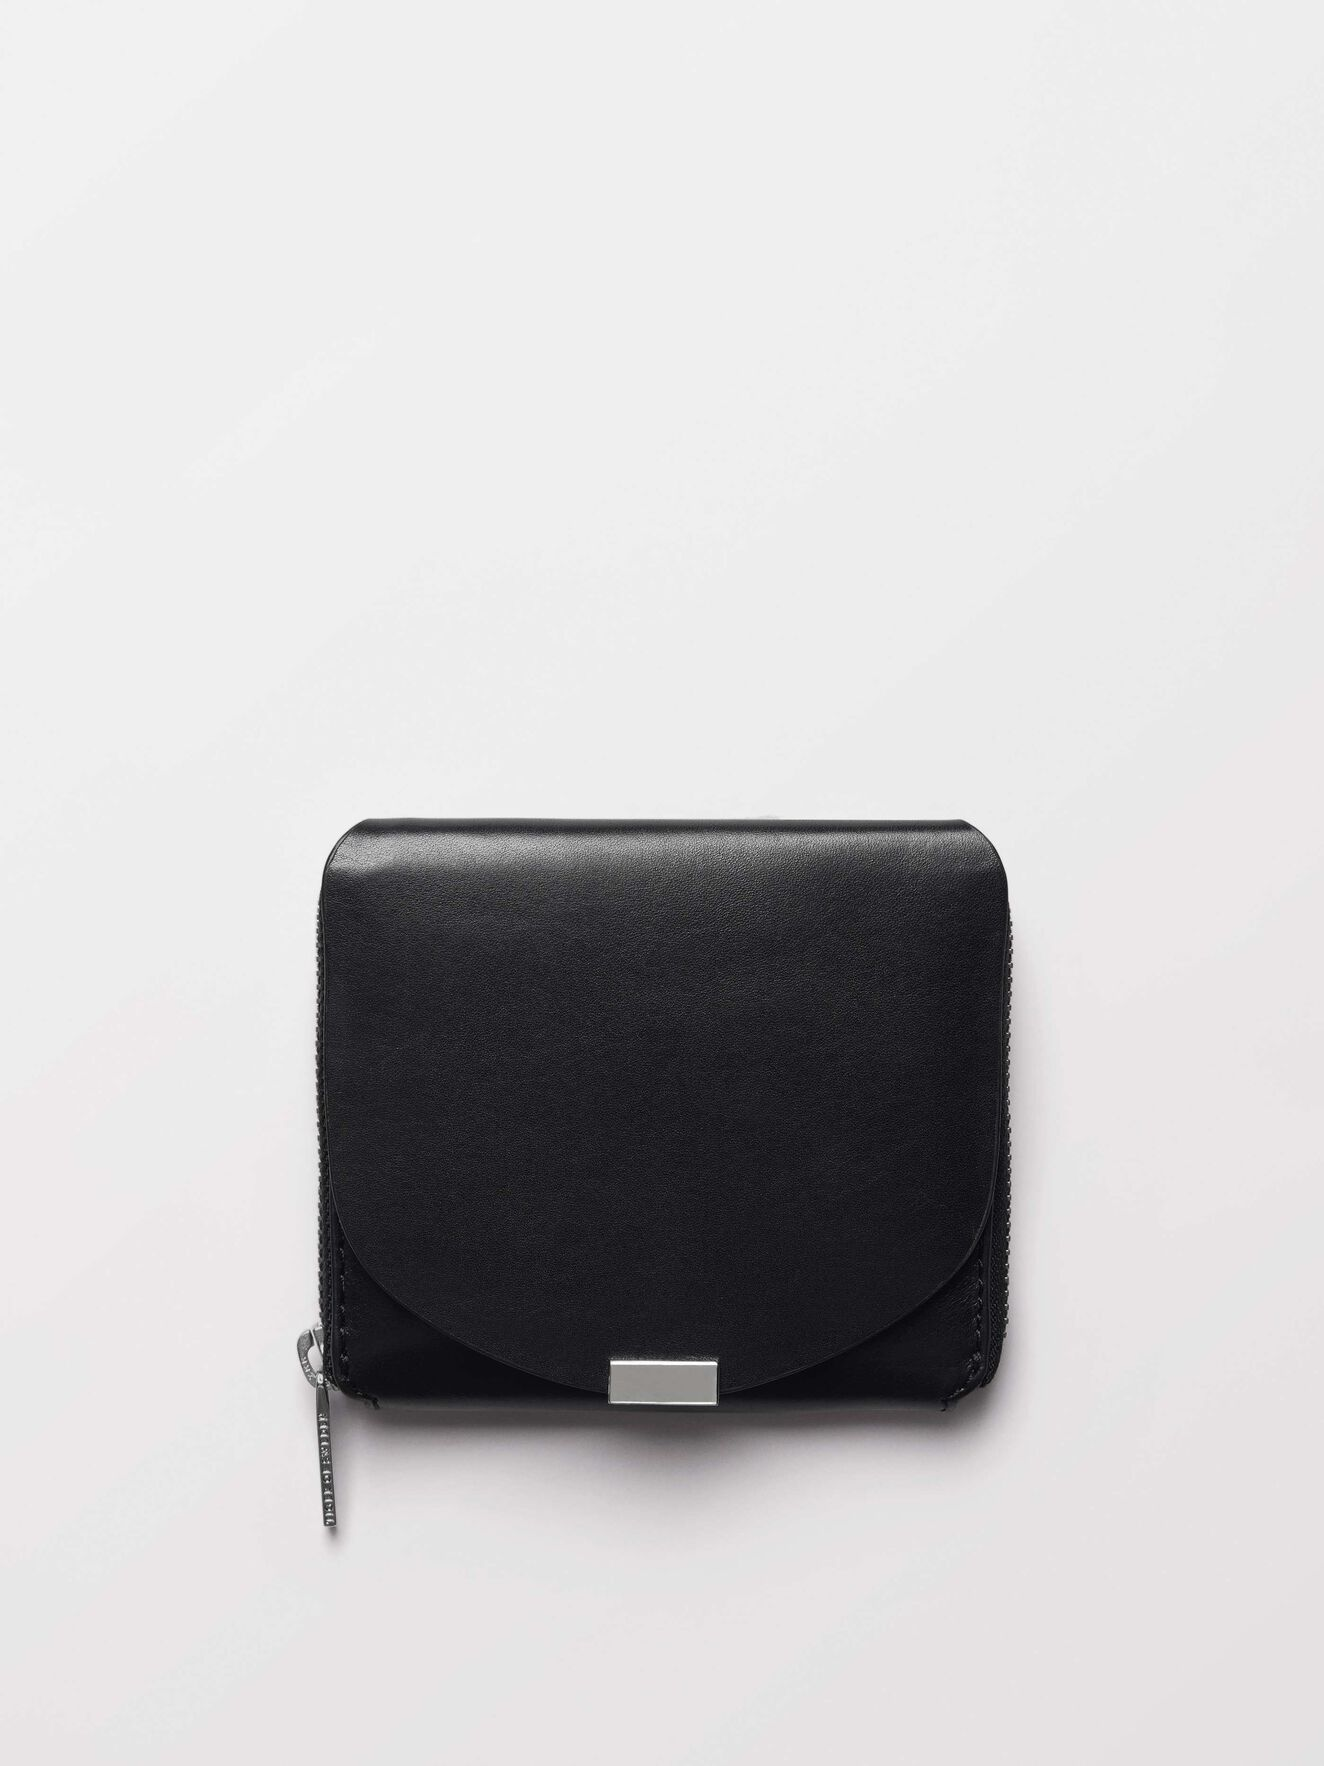 Drouaise wallet in Black from Tiger of Sweden